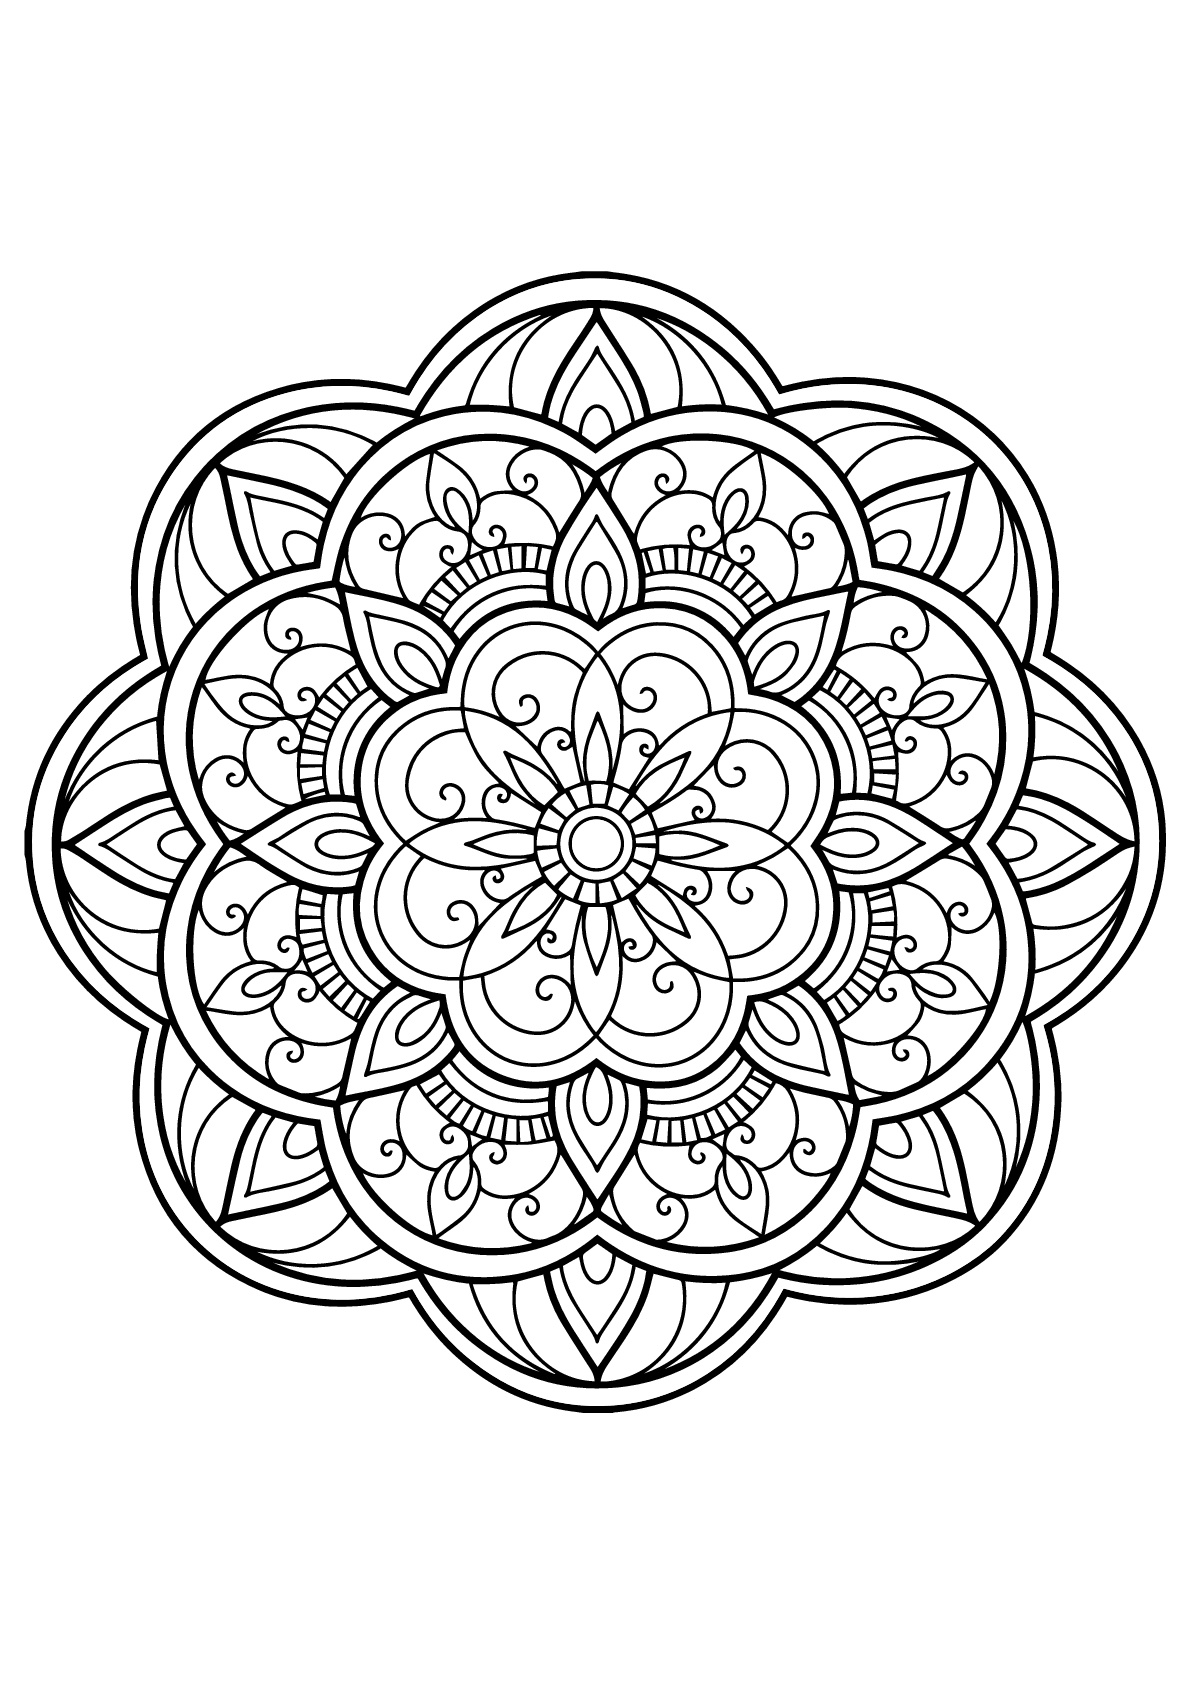 Mandala From Free Coloring Books For Adults 14 M Alas